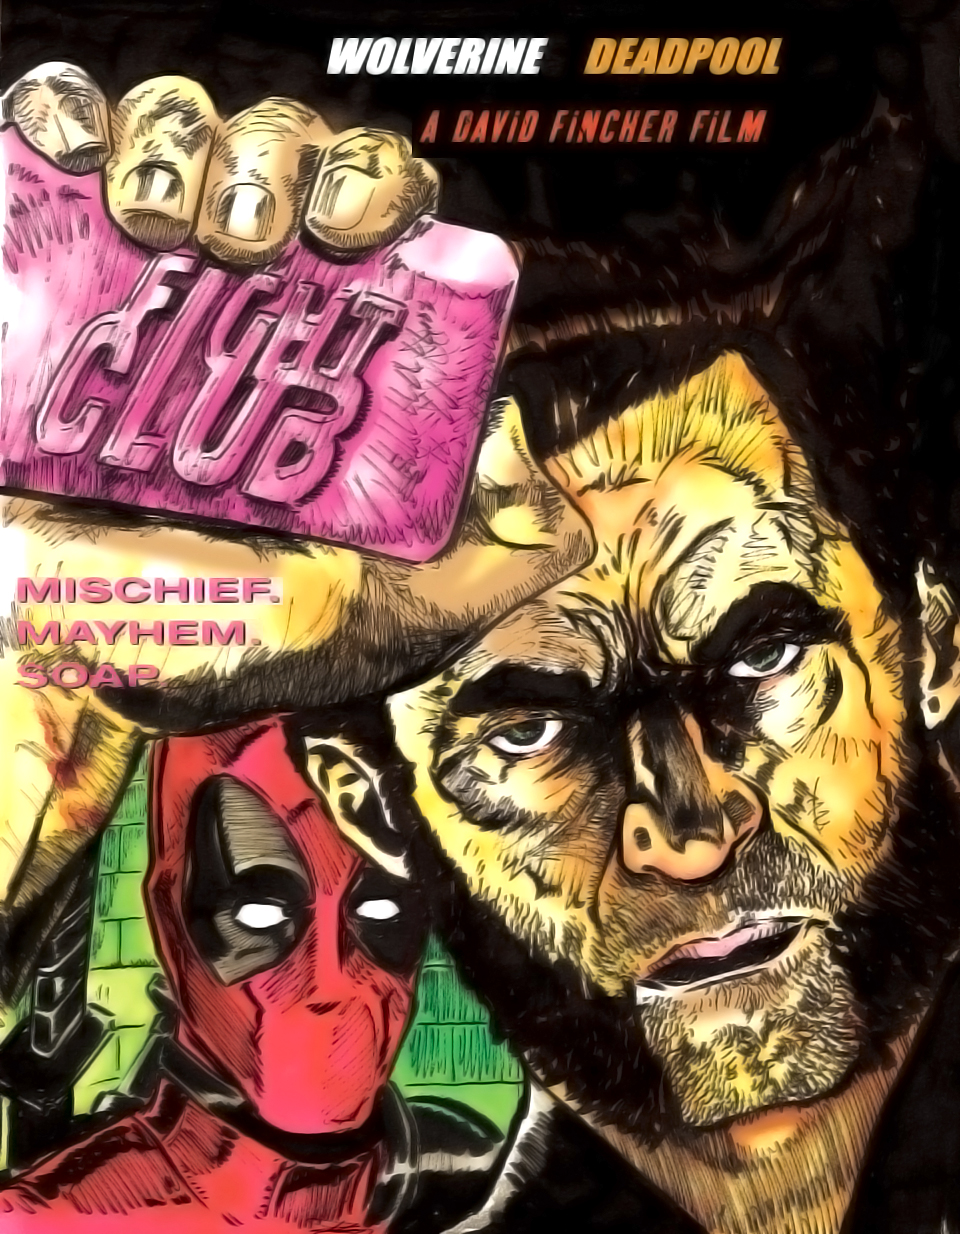 Drawn poster deadpool It Club Movie is Poster